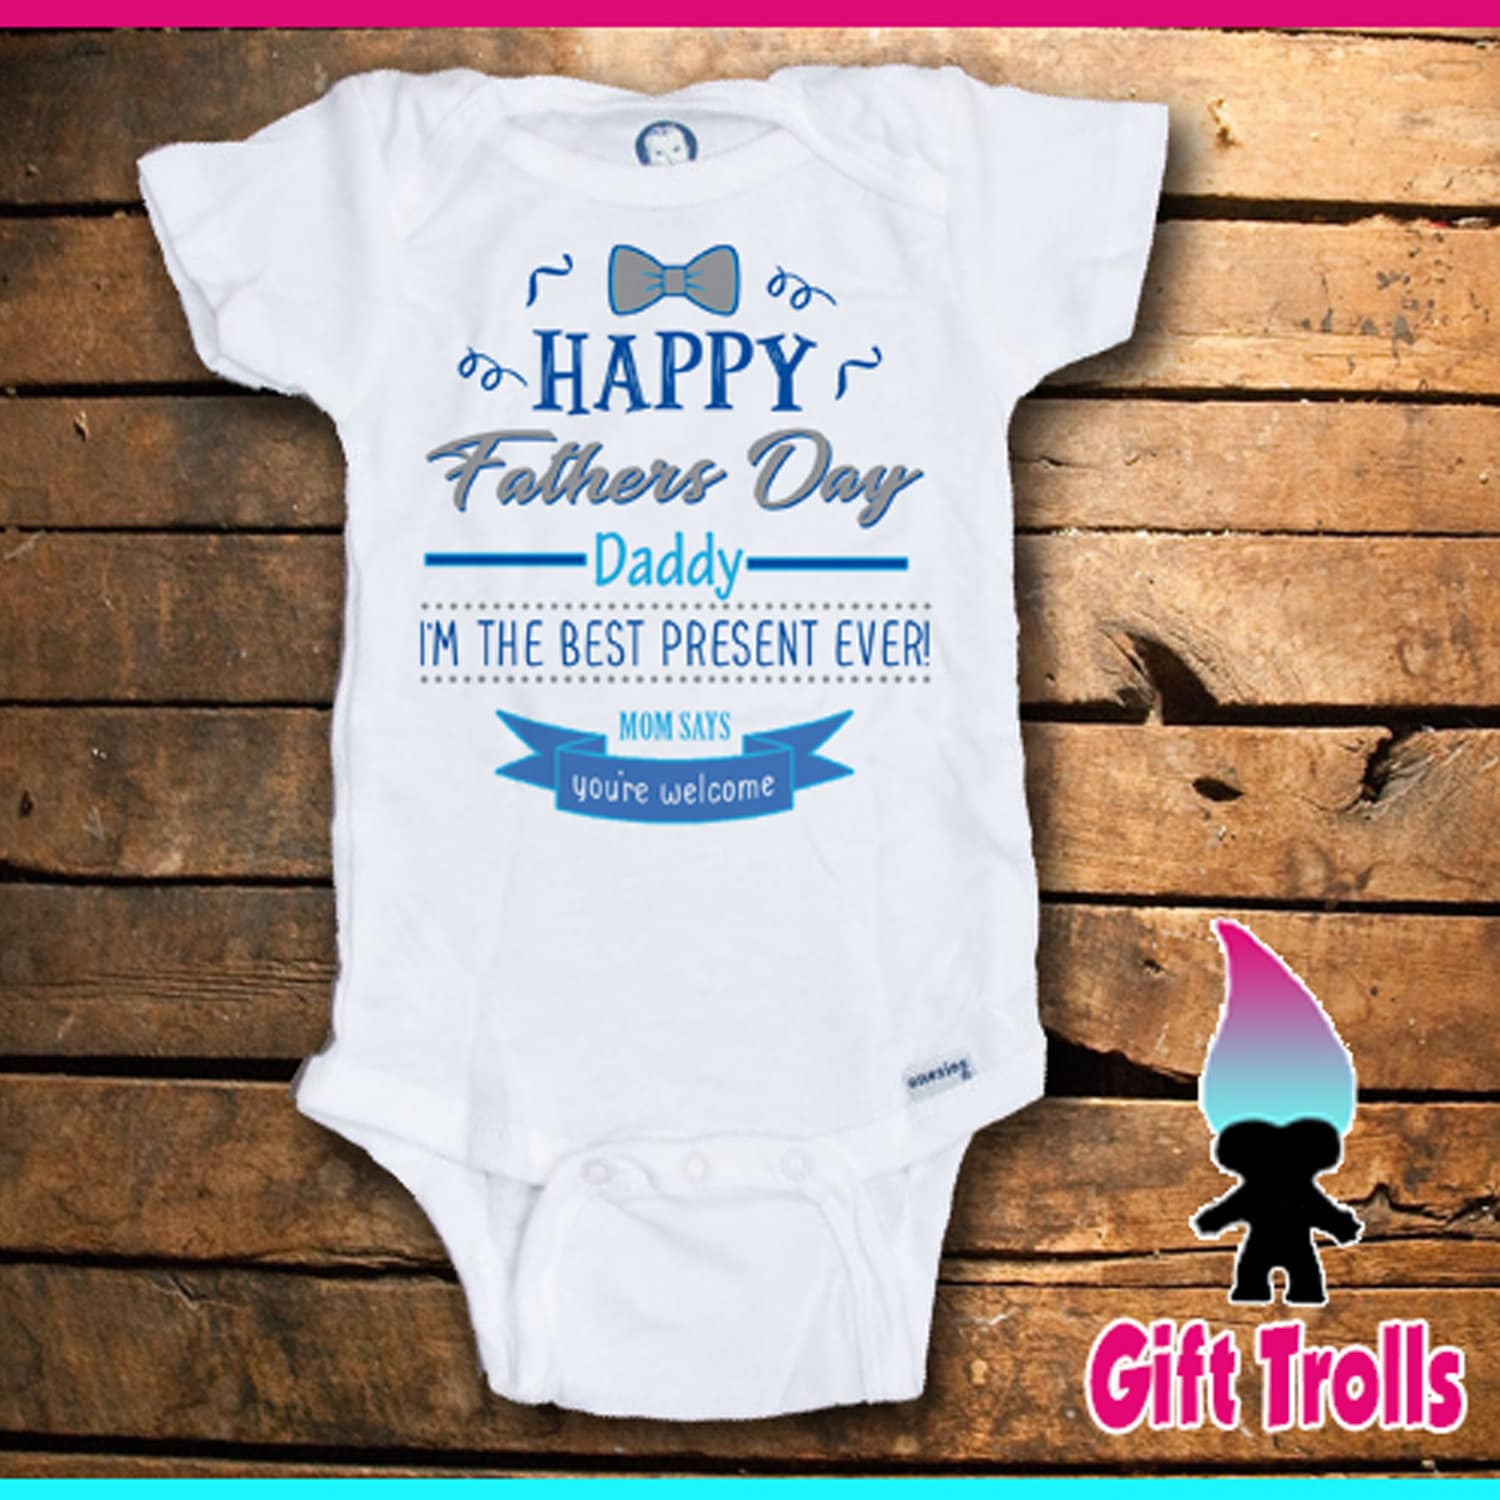 im the best fathers day gift ever romper tshirt fathers day gift